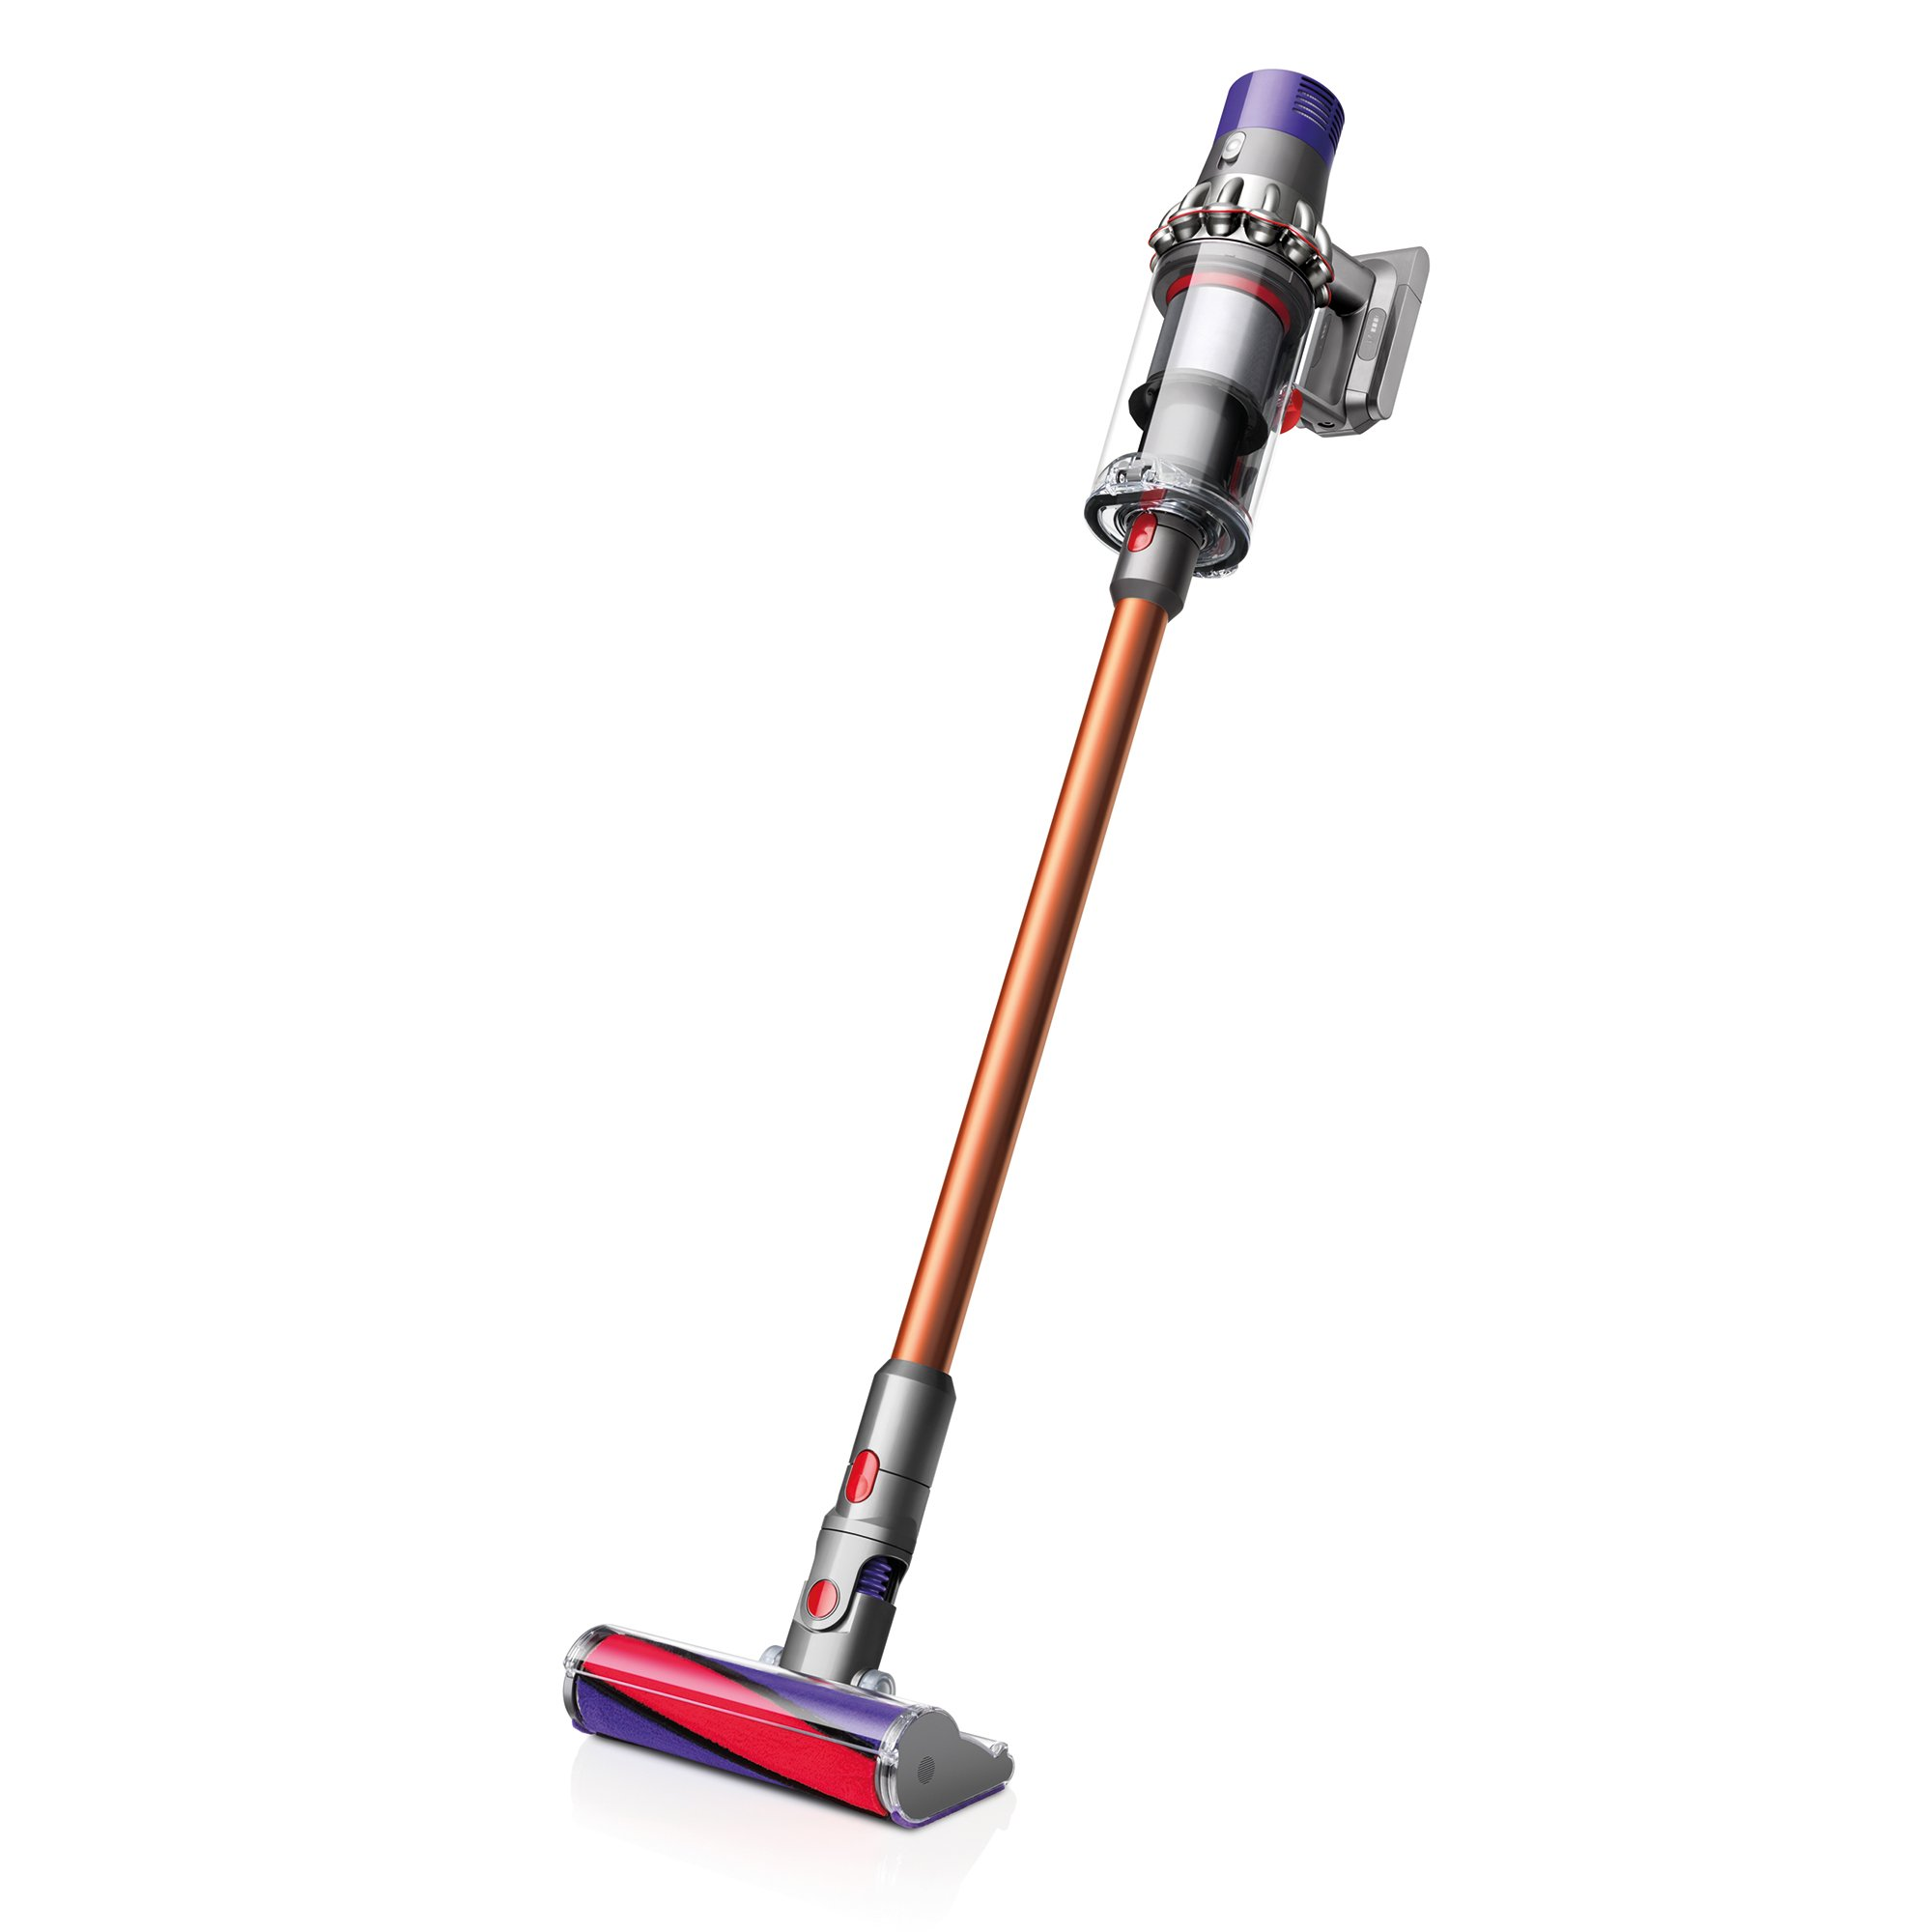 Dyson Cyclone V10 Absolute Lightweight Cordless Stick Vacuum Cleaner by Dyson